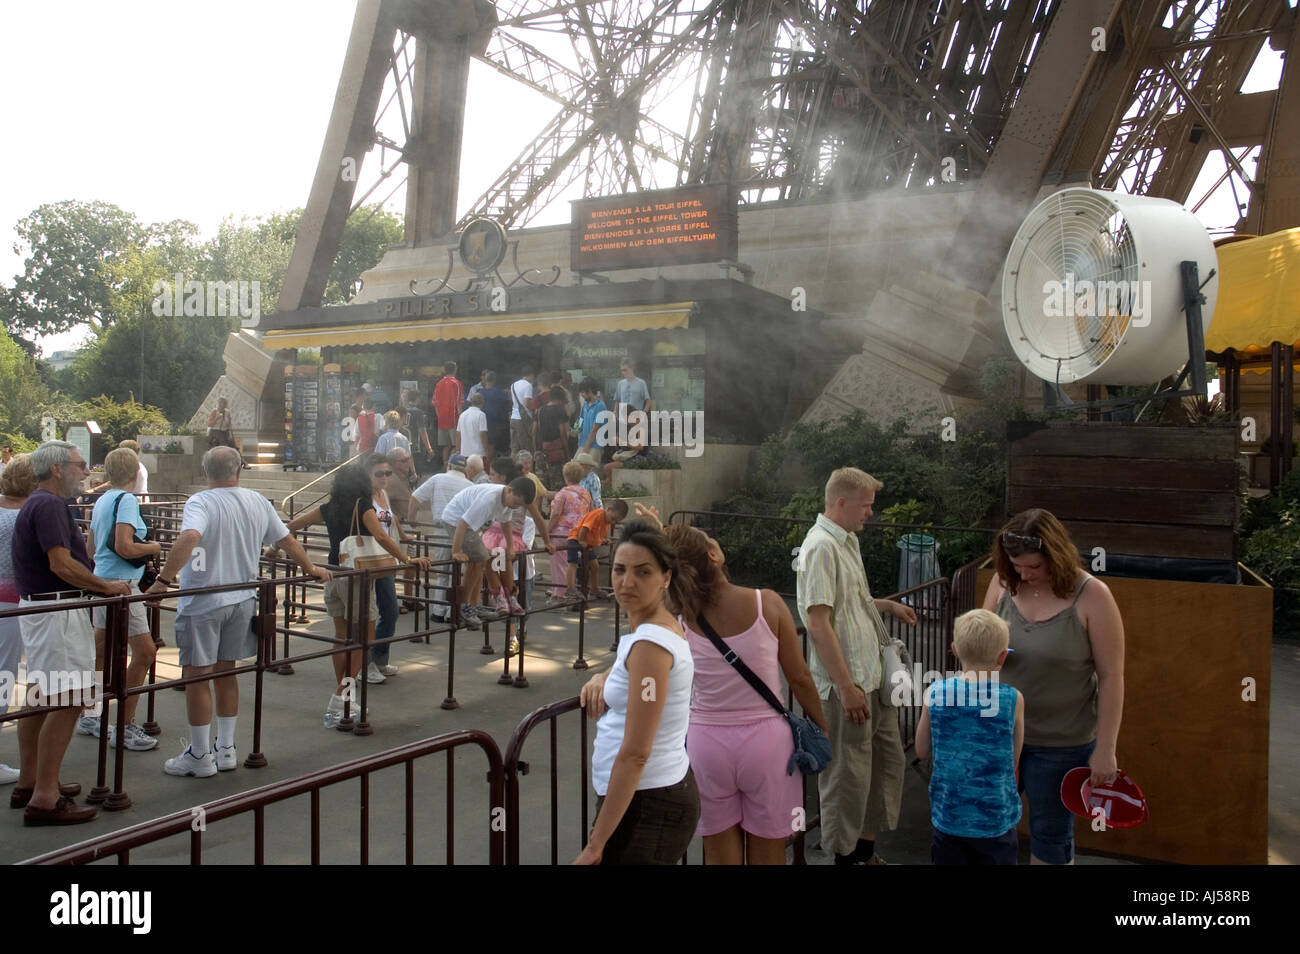 Tourists waiting to visit the Eiffel tower under sprayed mist, during the summer heatwave, Paris, France - Stock Image